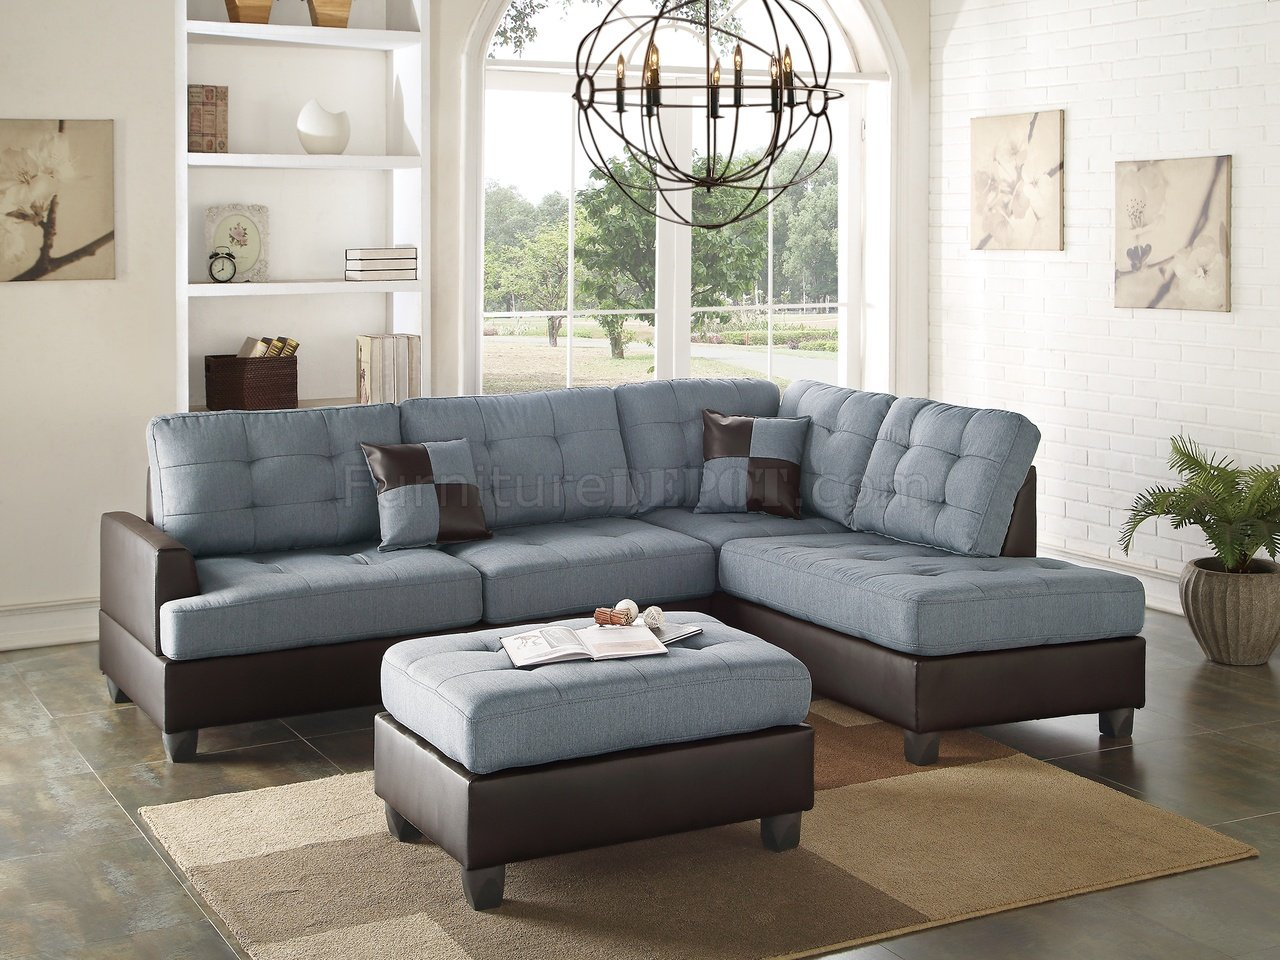 F6858 Sectional Sofa 3Pc In Grey Fabric By Boss